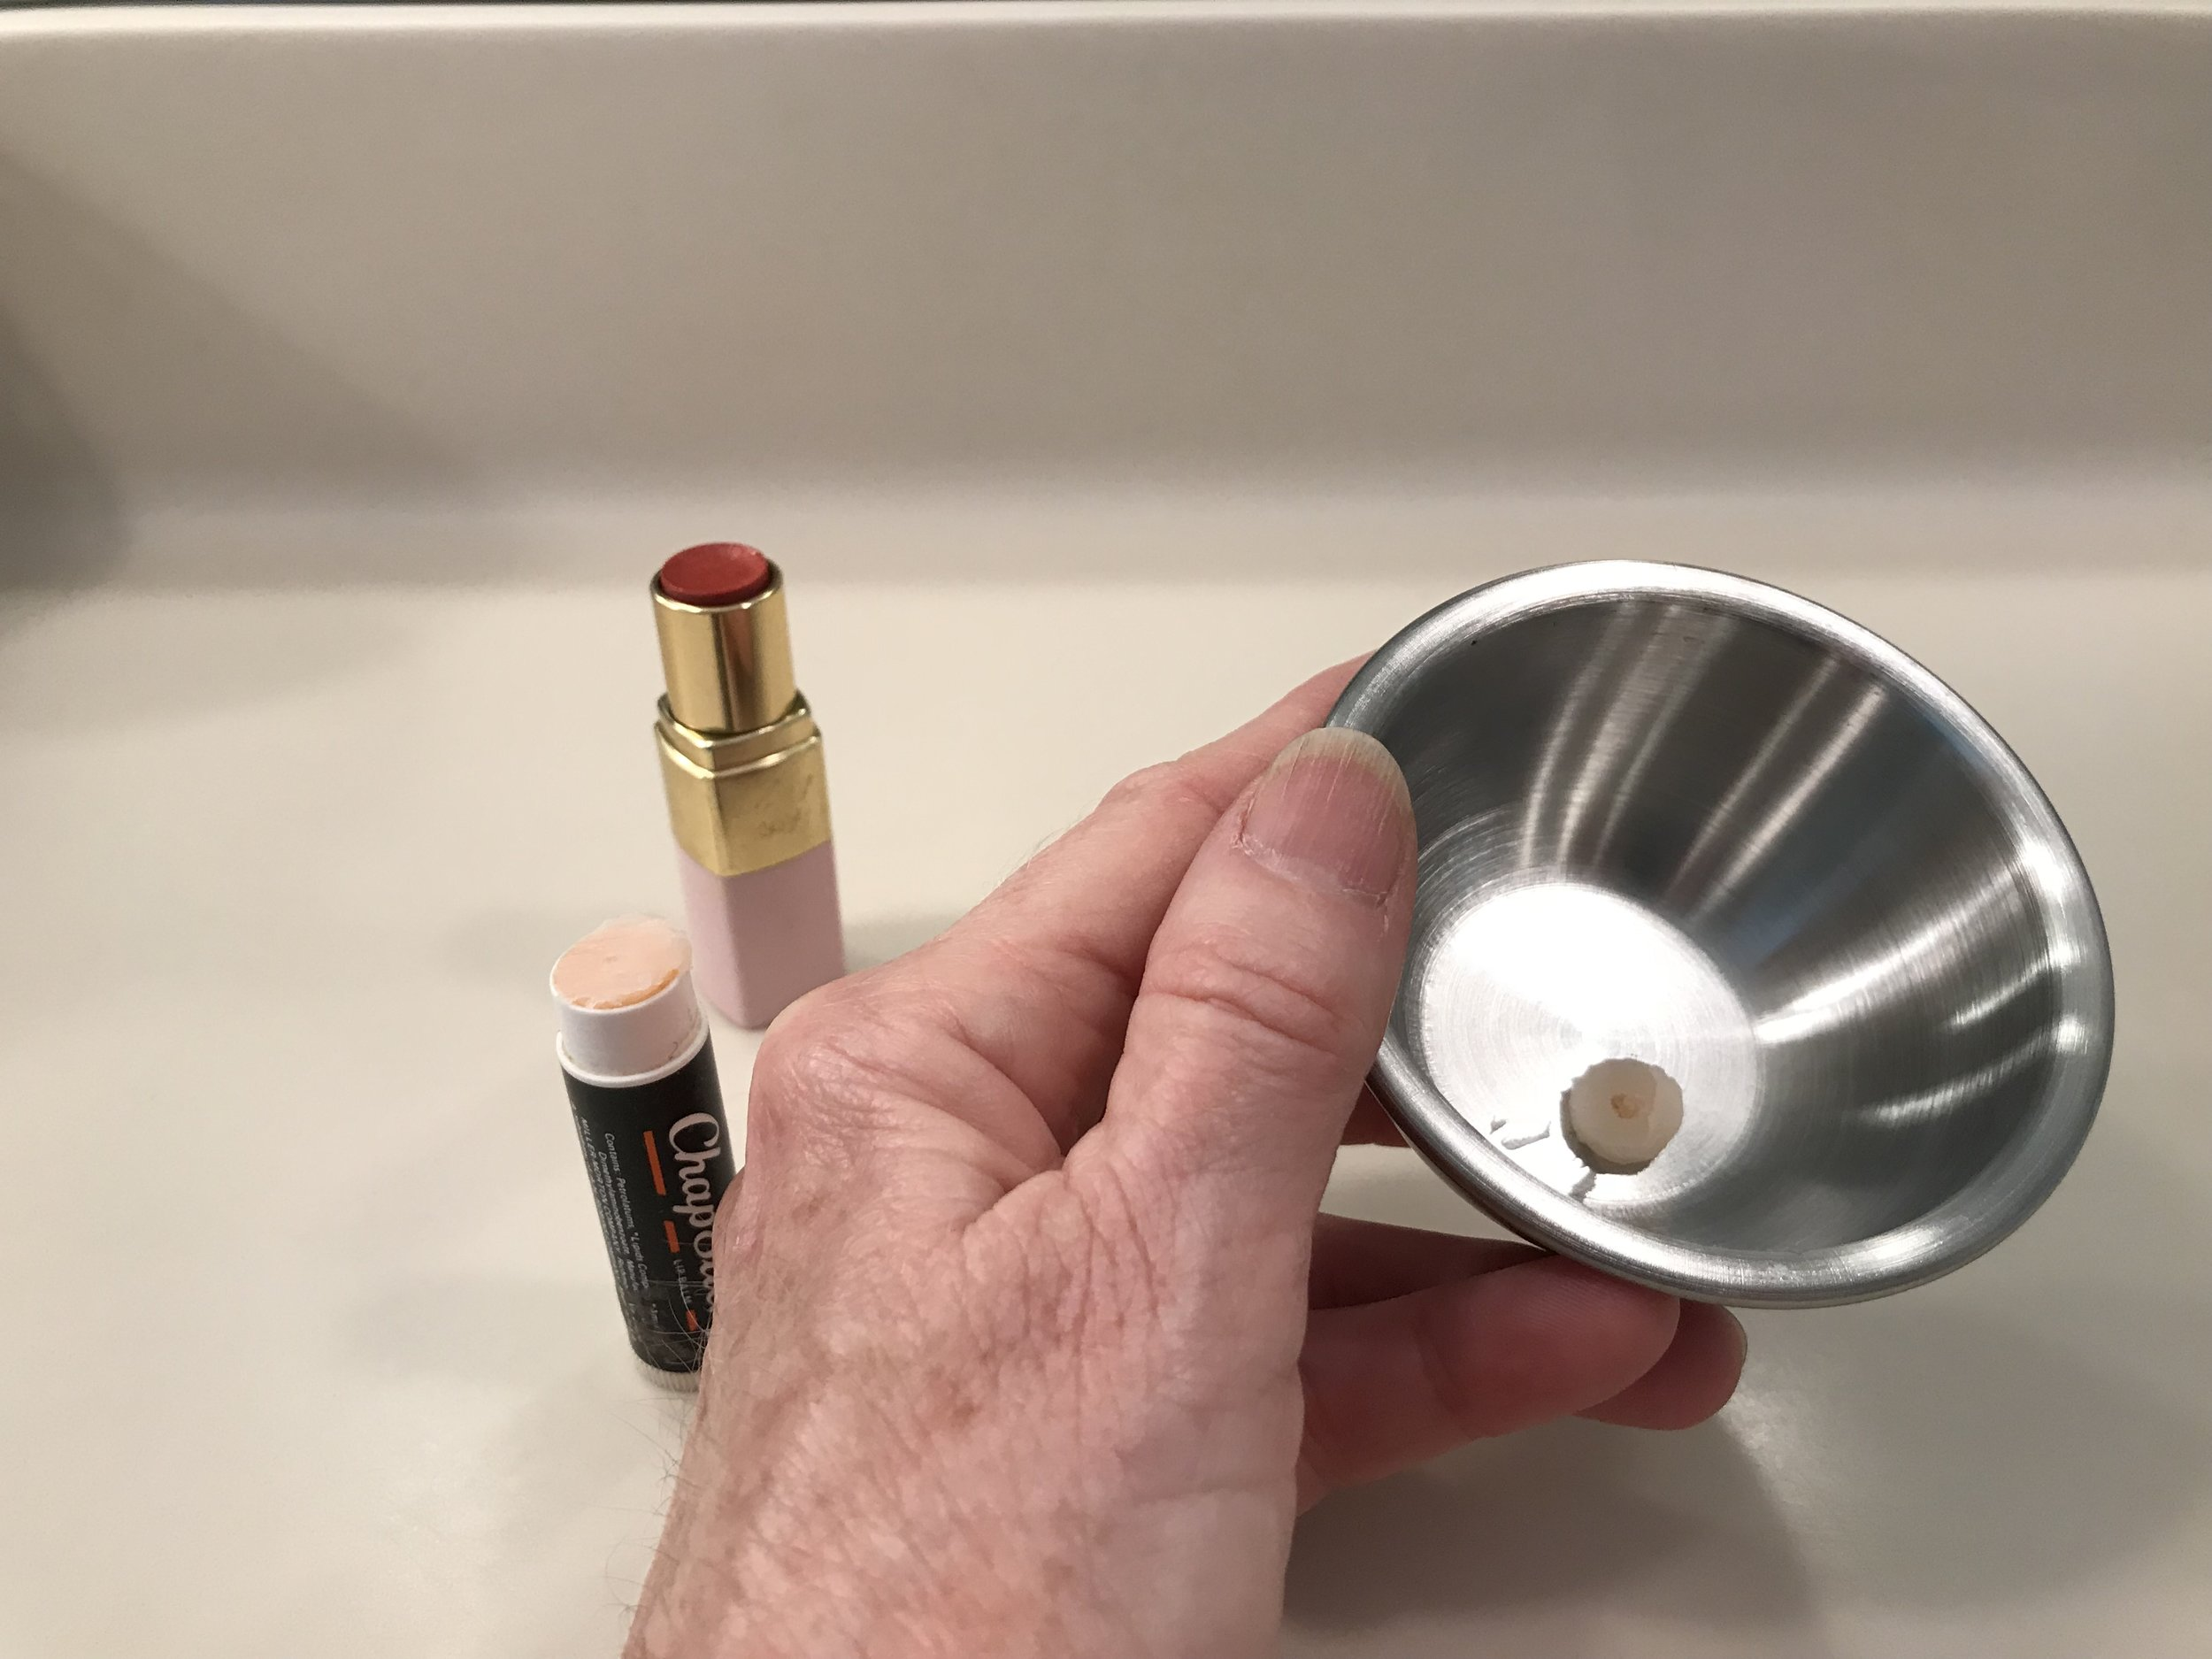 1. Place lip balm in a small bowl.